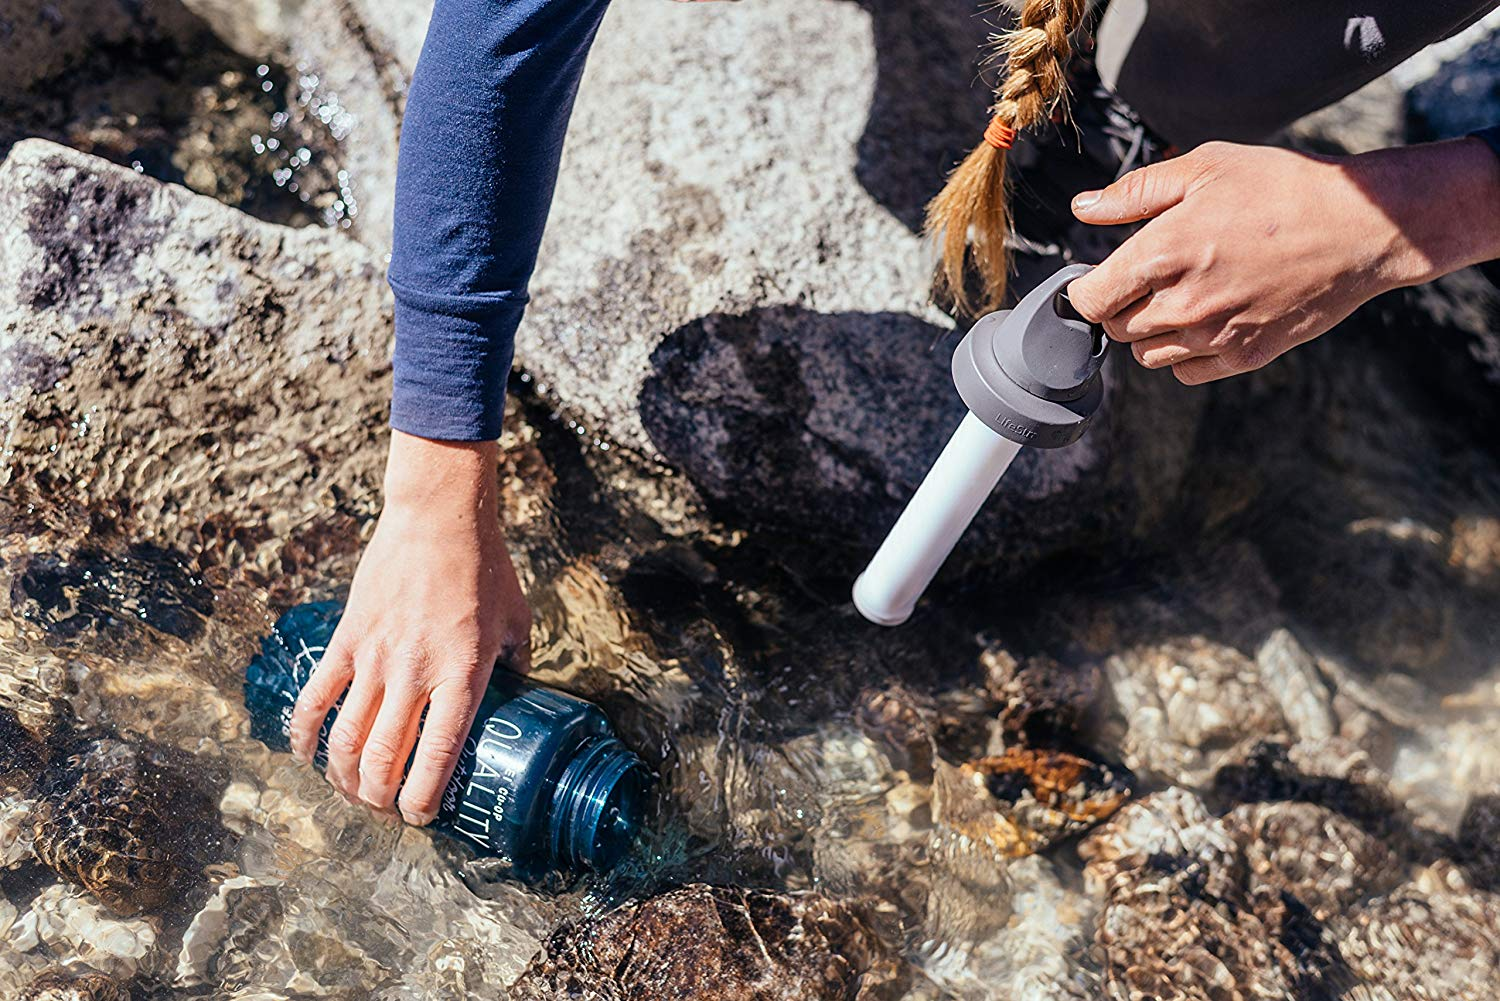 Life Straw Universal Filter